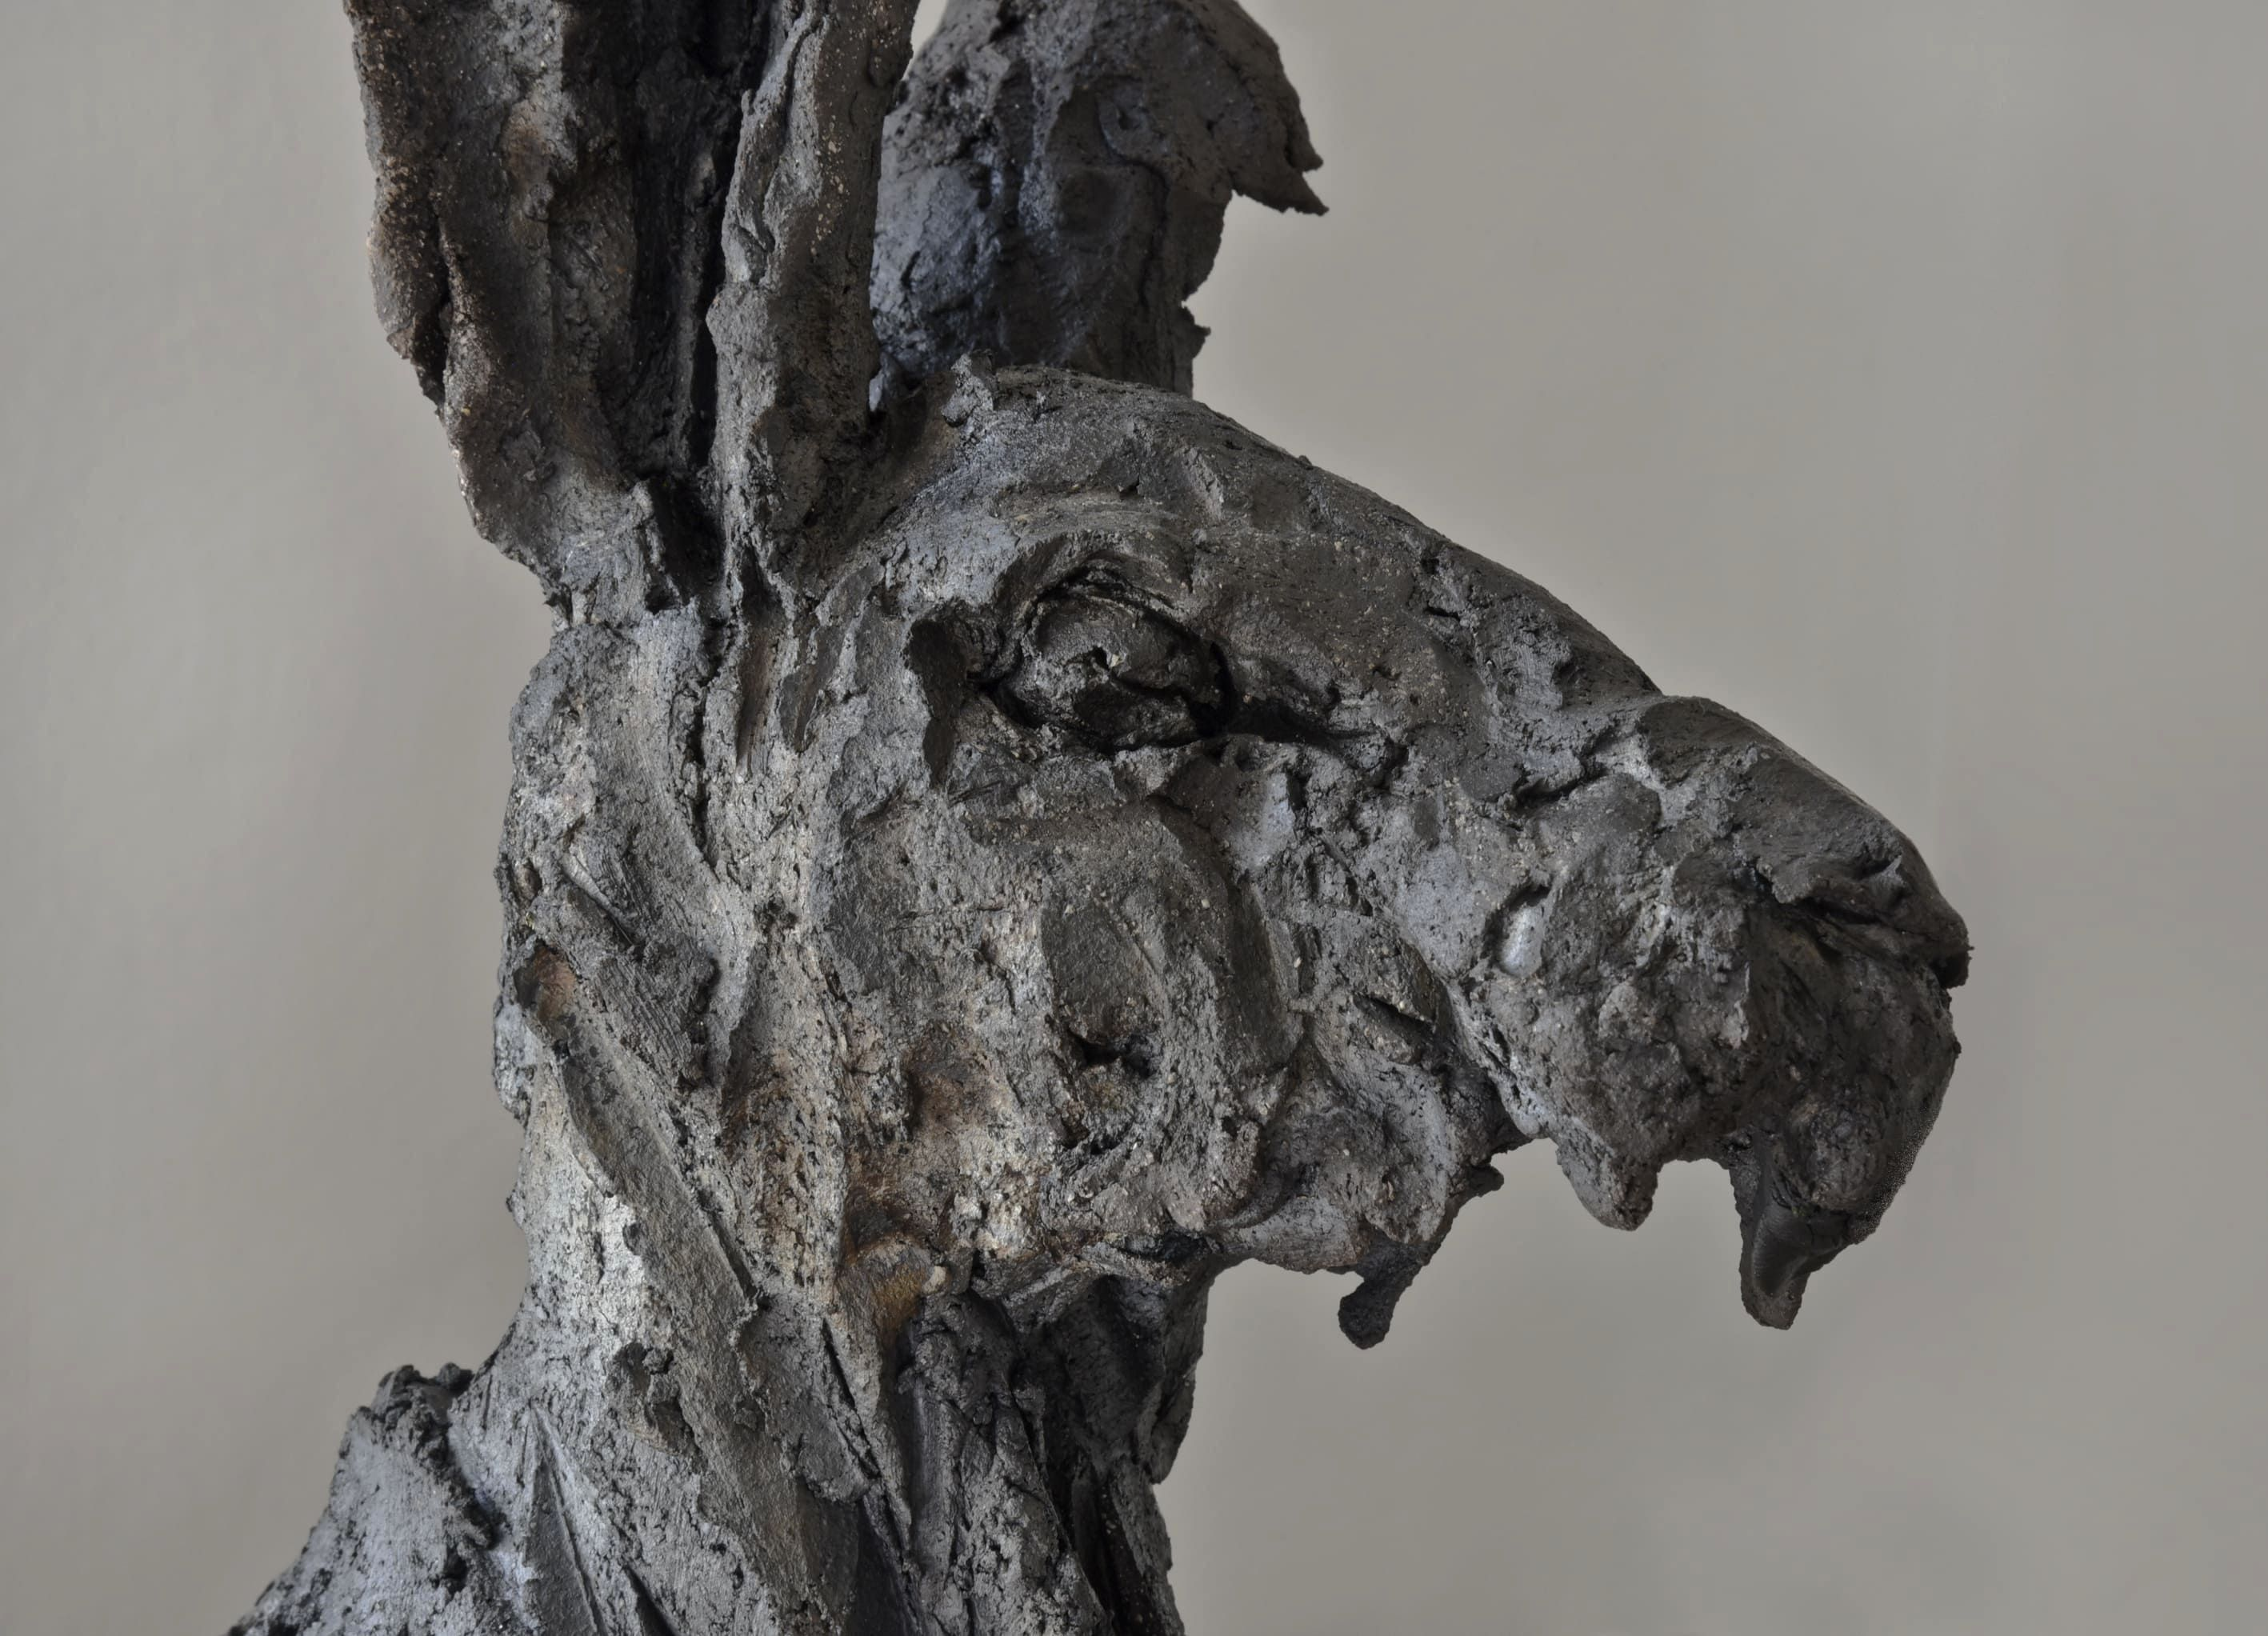 Peau d'Hase,Cécile Raynal,Sculpture contemporaine, detail 3